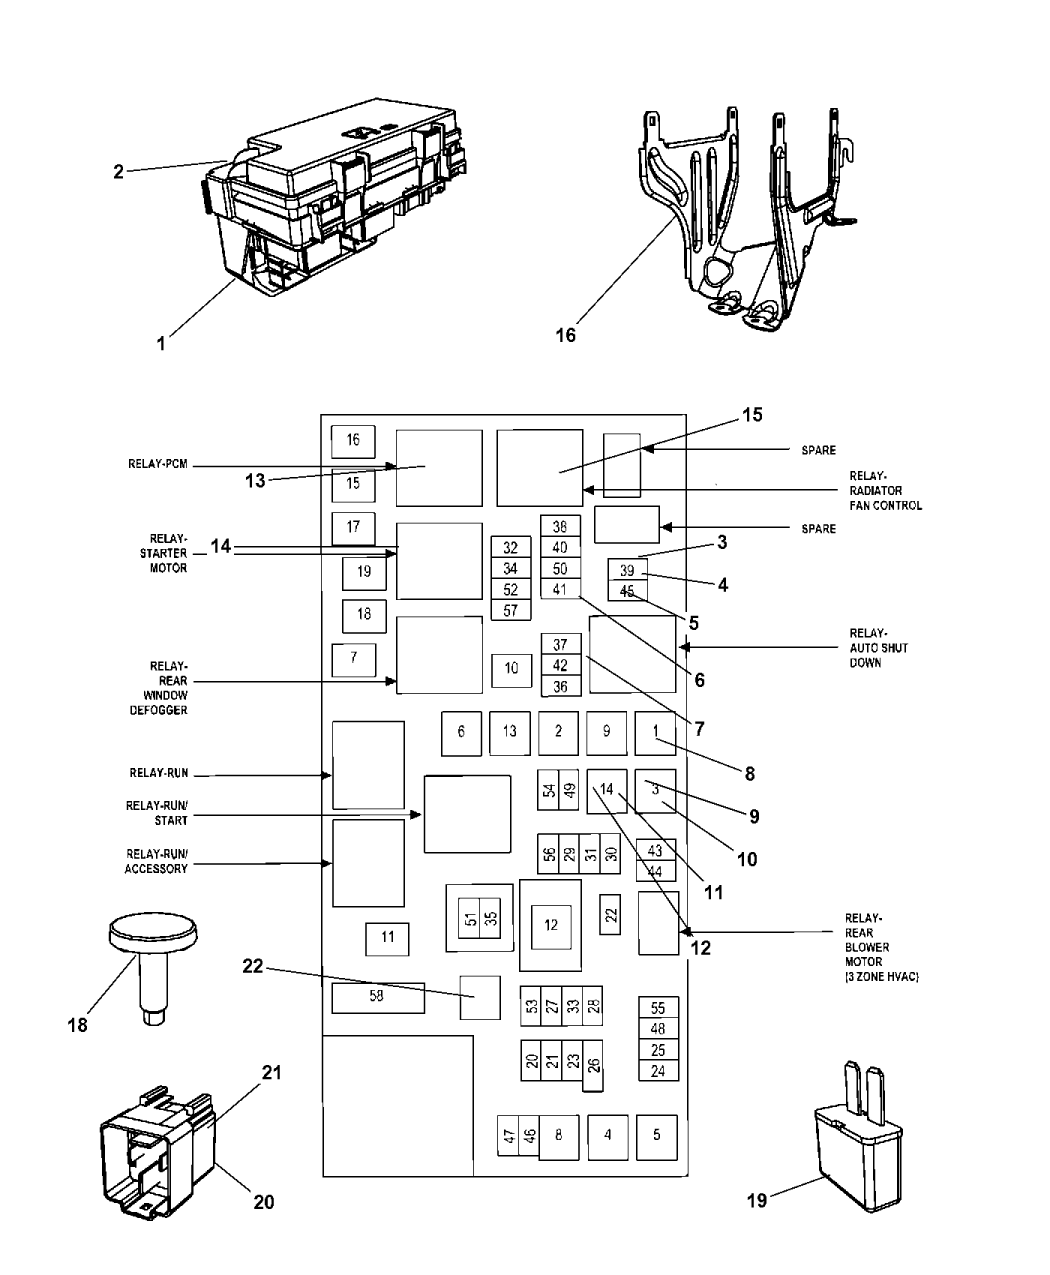 2012 grand caravan fuel pump wiring diagram